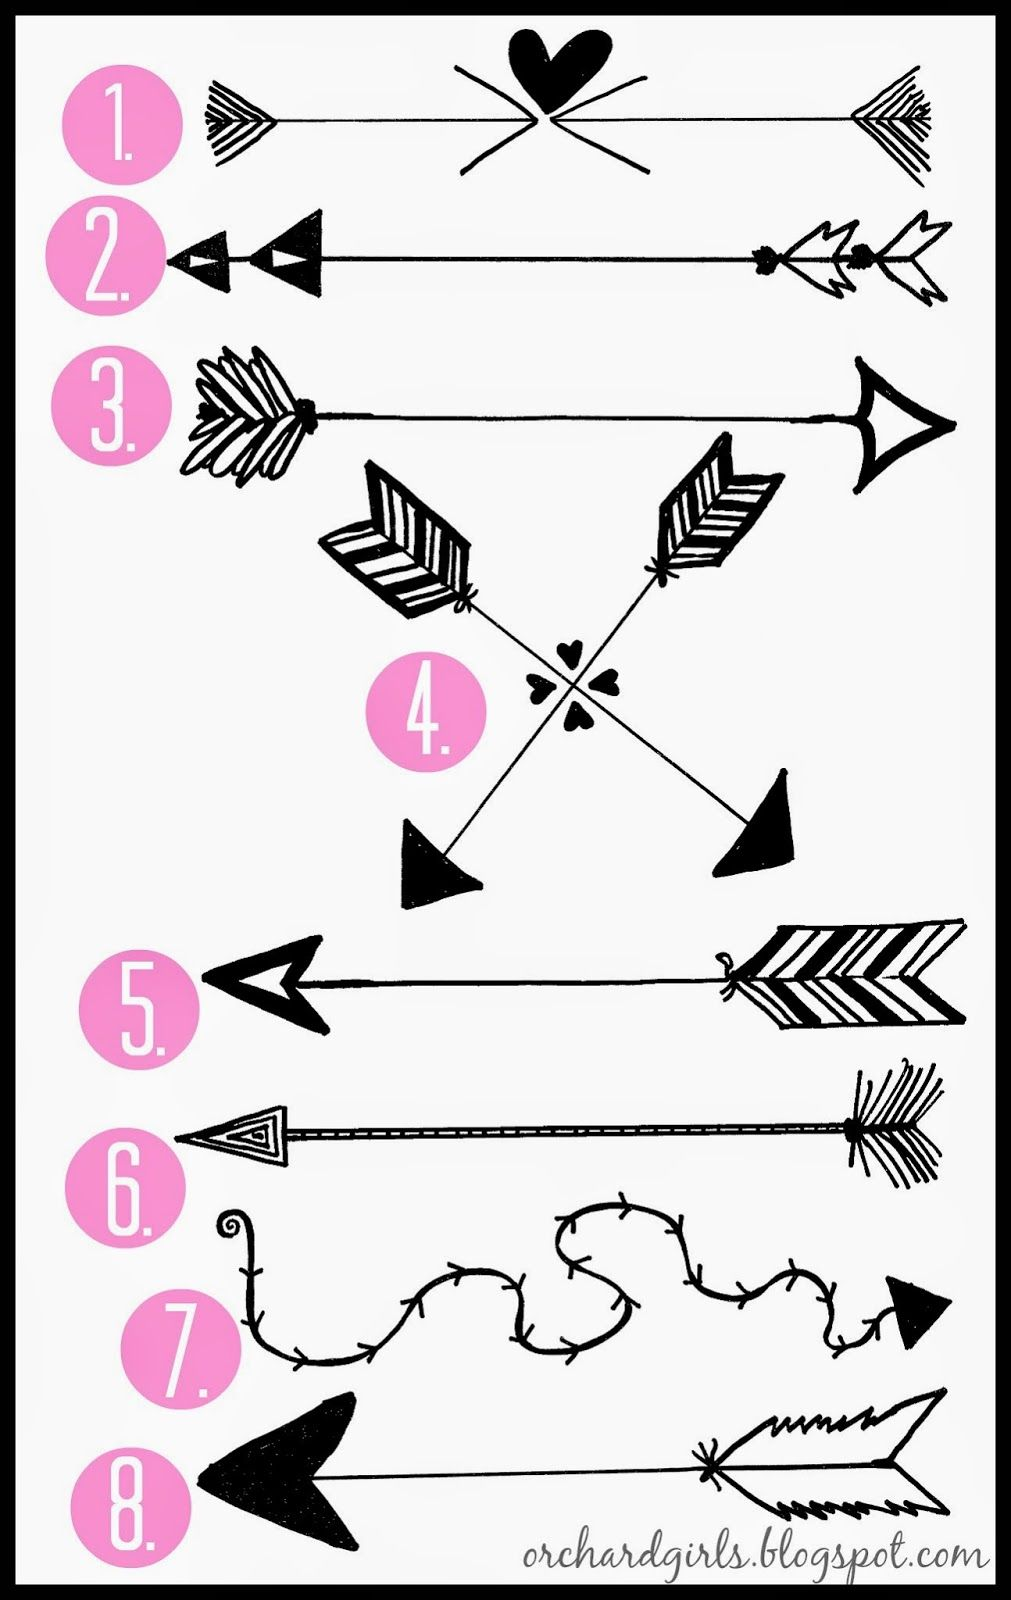 Pin By Ae On Room Parents Arrow Arrow Drawing Hand Drawn Arrows